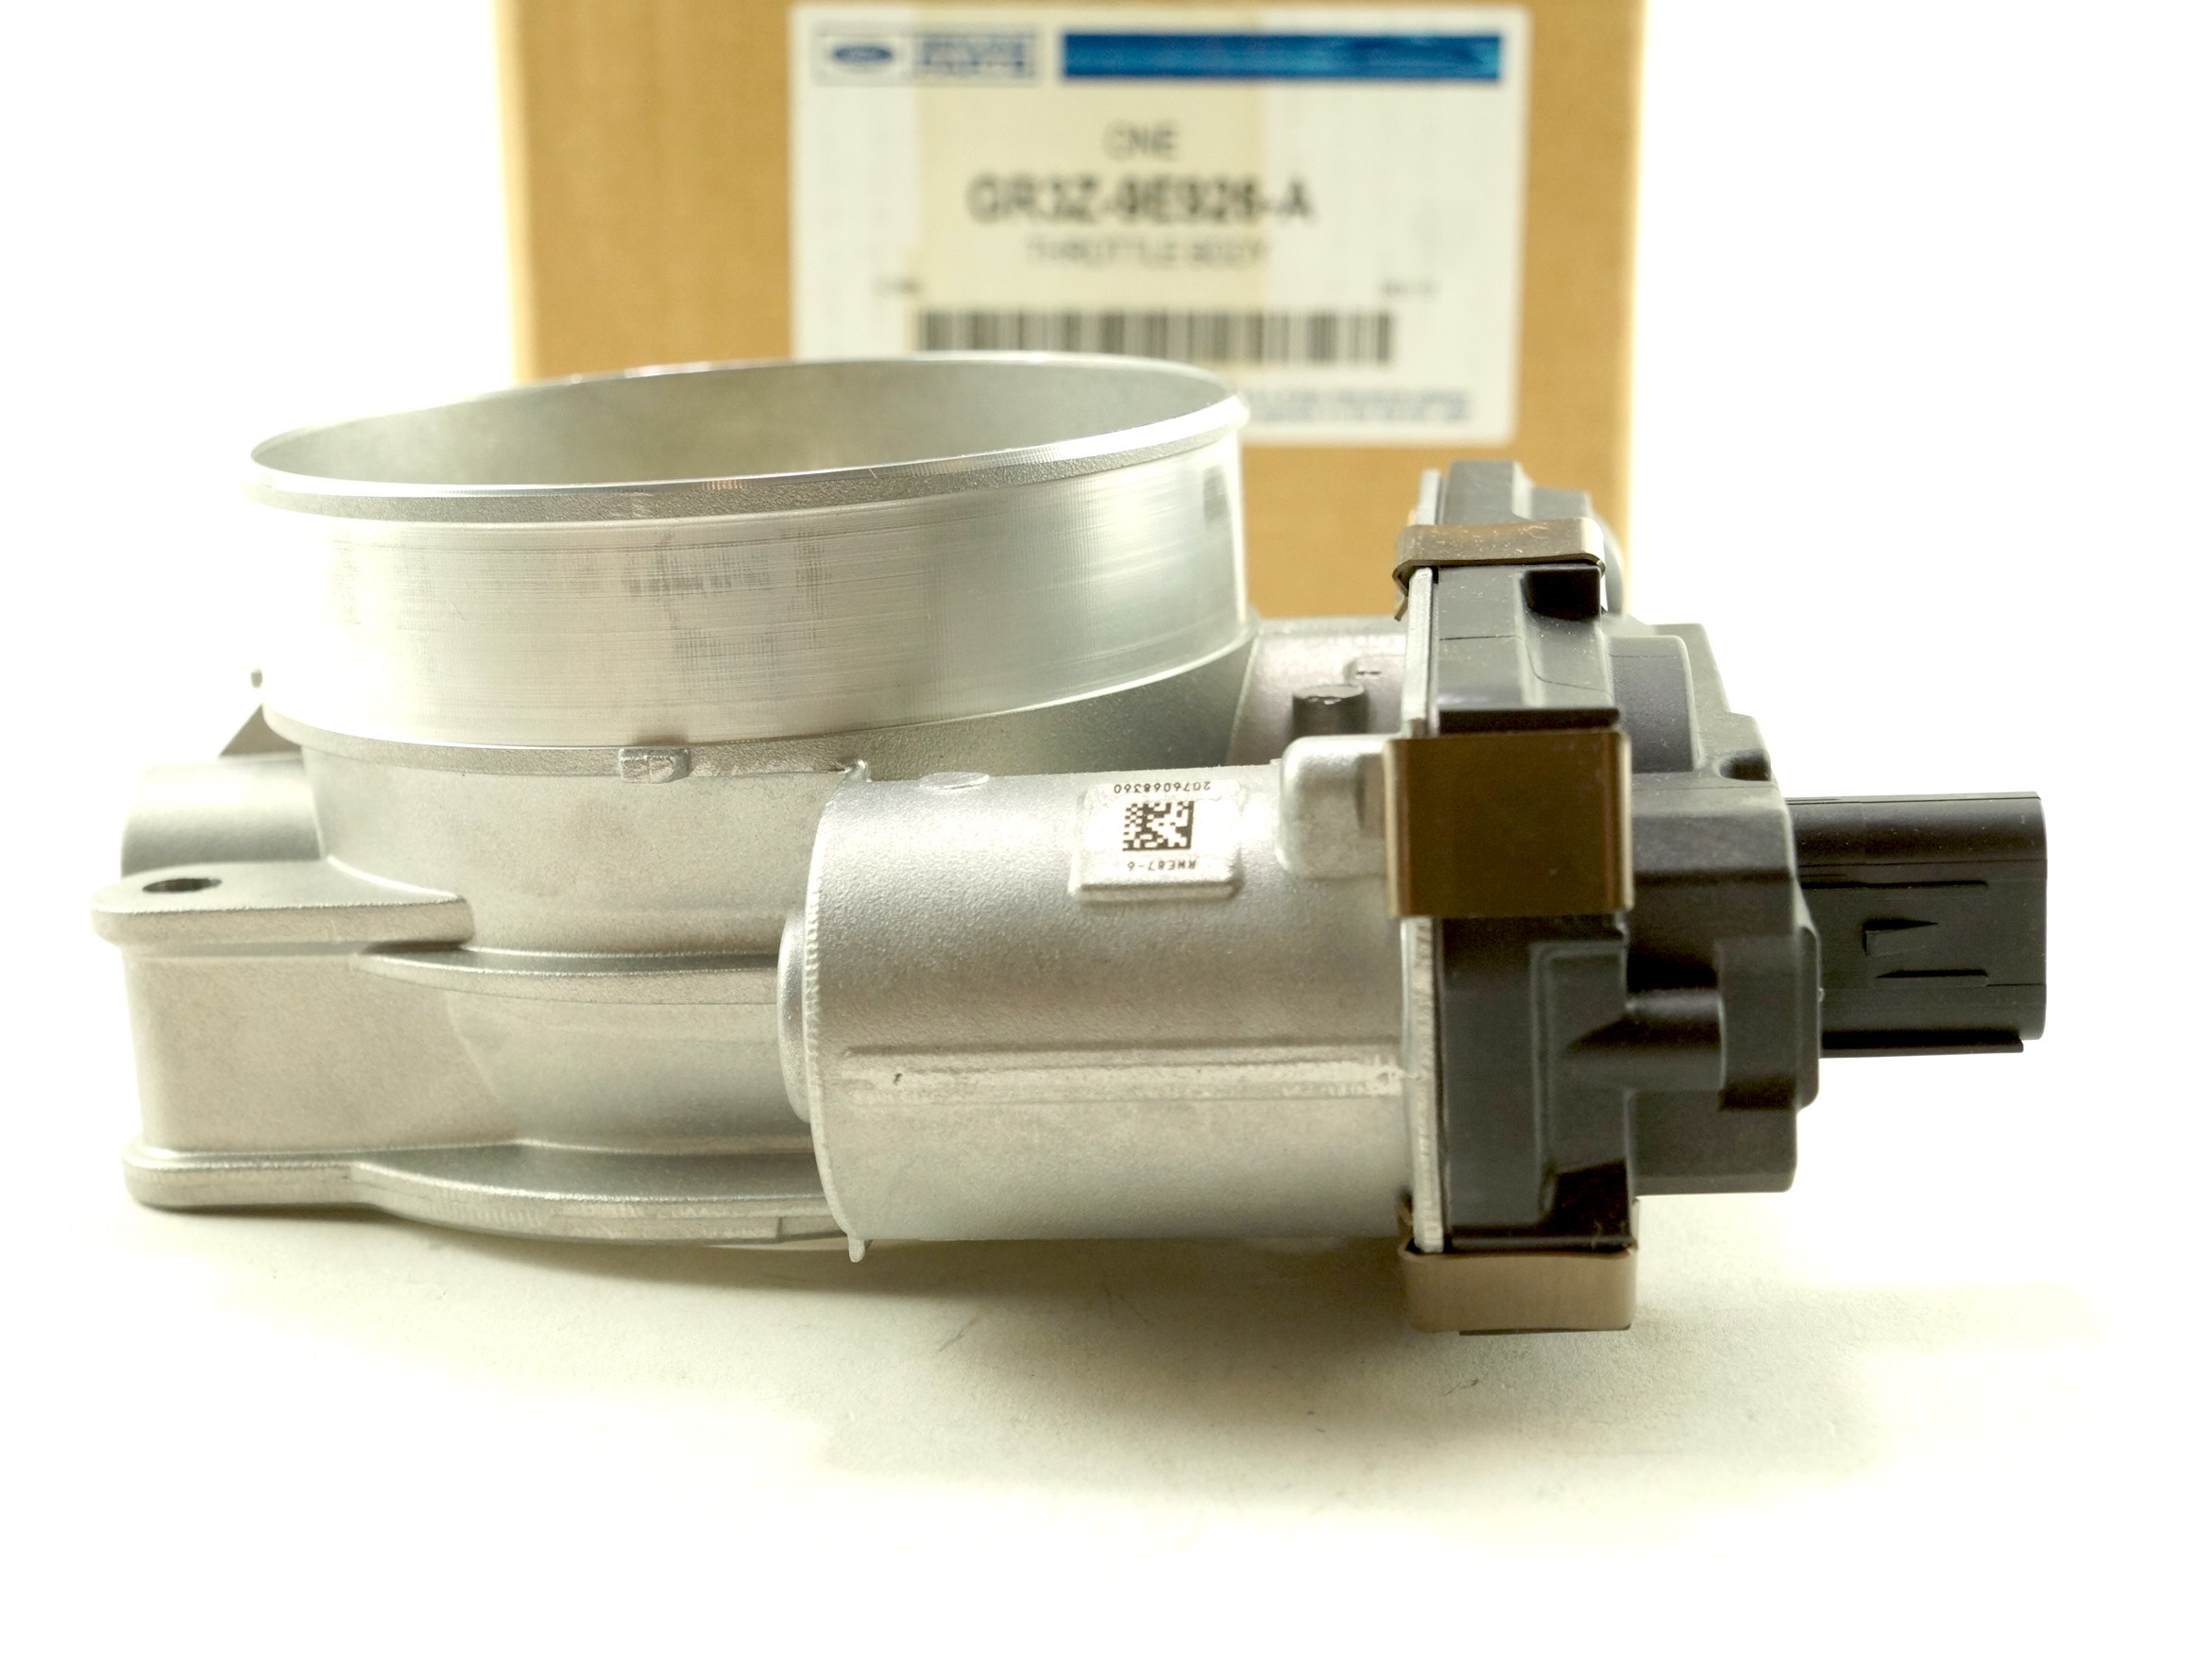 Genuine OEM GR3Z9E926A Ford 15-17 Mustang Throttle Body New Fast Free Shipping - image 8